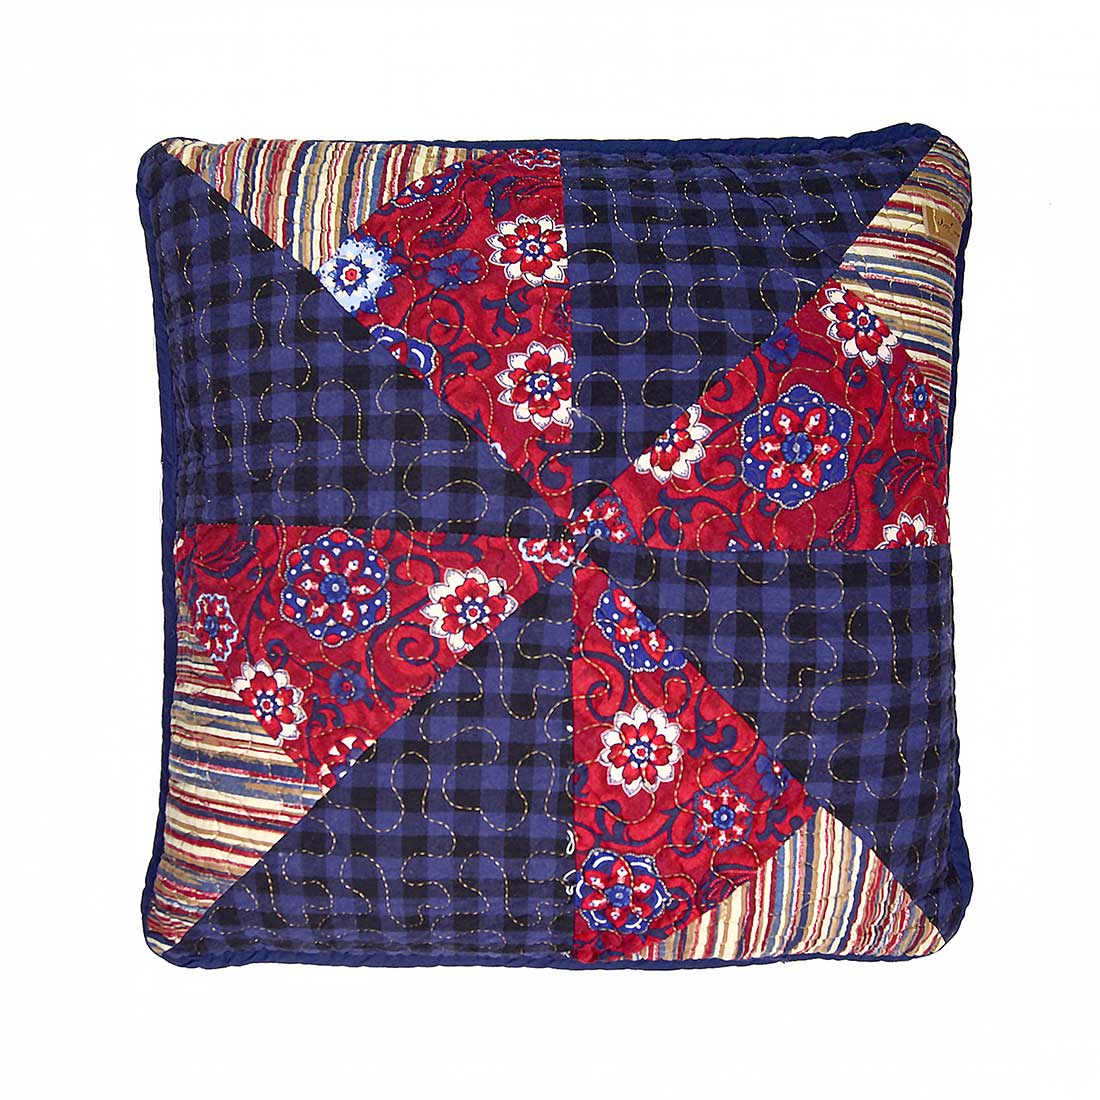 Plymouth Dec Pillow by Donna Sharp - Pinwheel